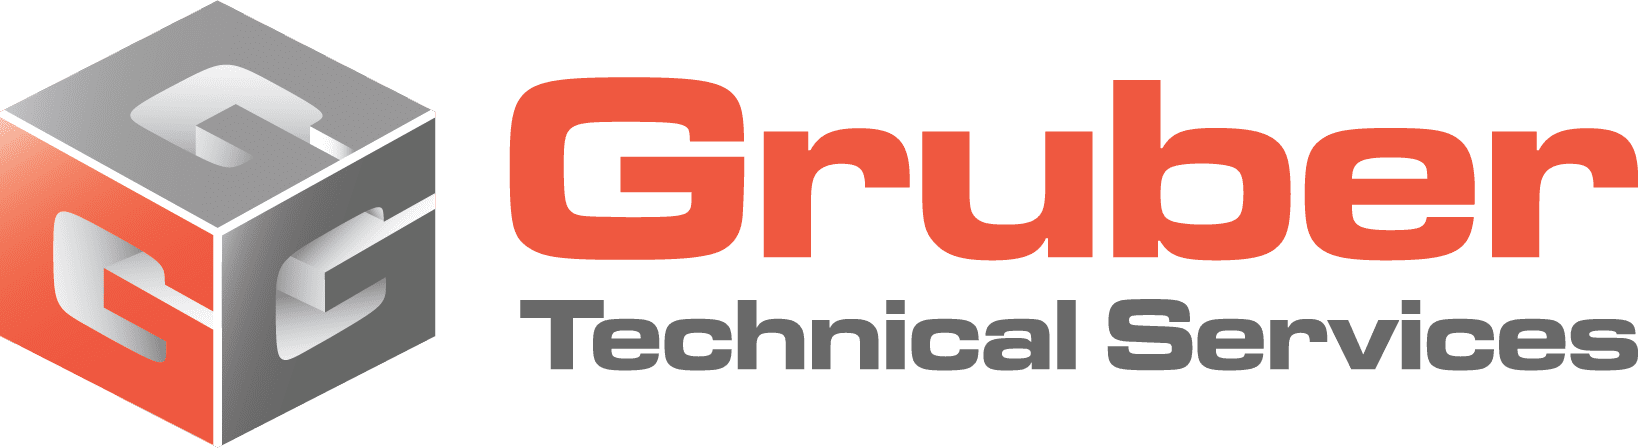 https://gruber.com/wp-content/uploads/sites/2/2019/11/Gruber-Technical-Services_2.png